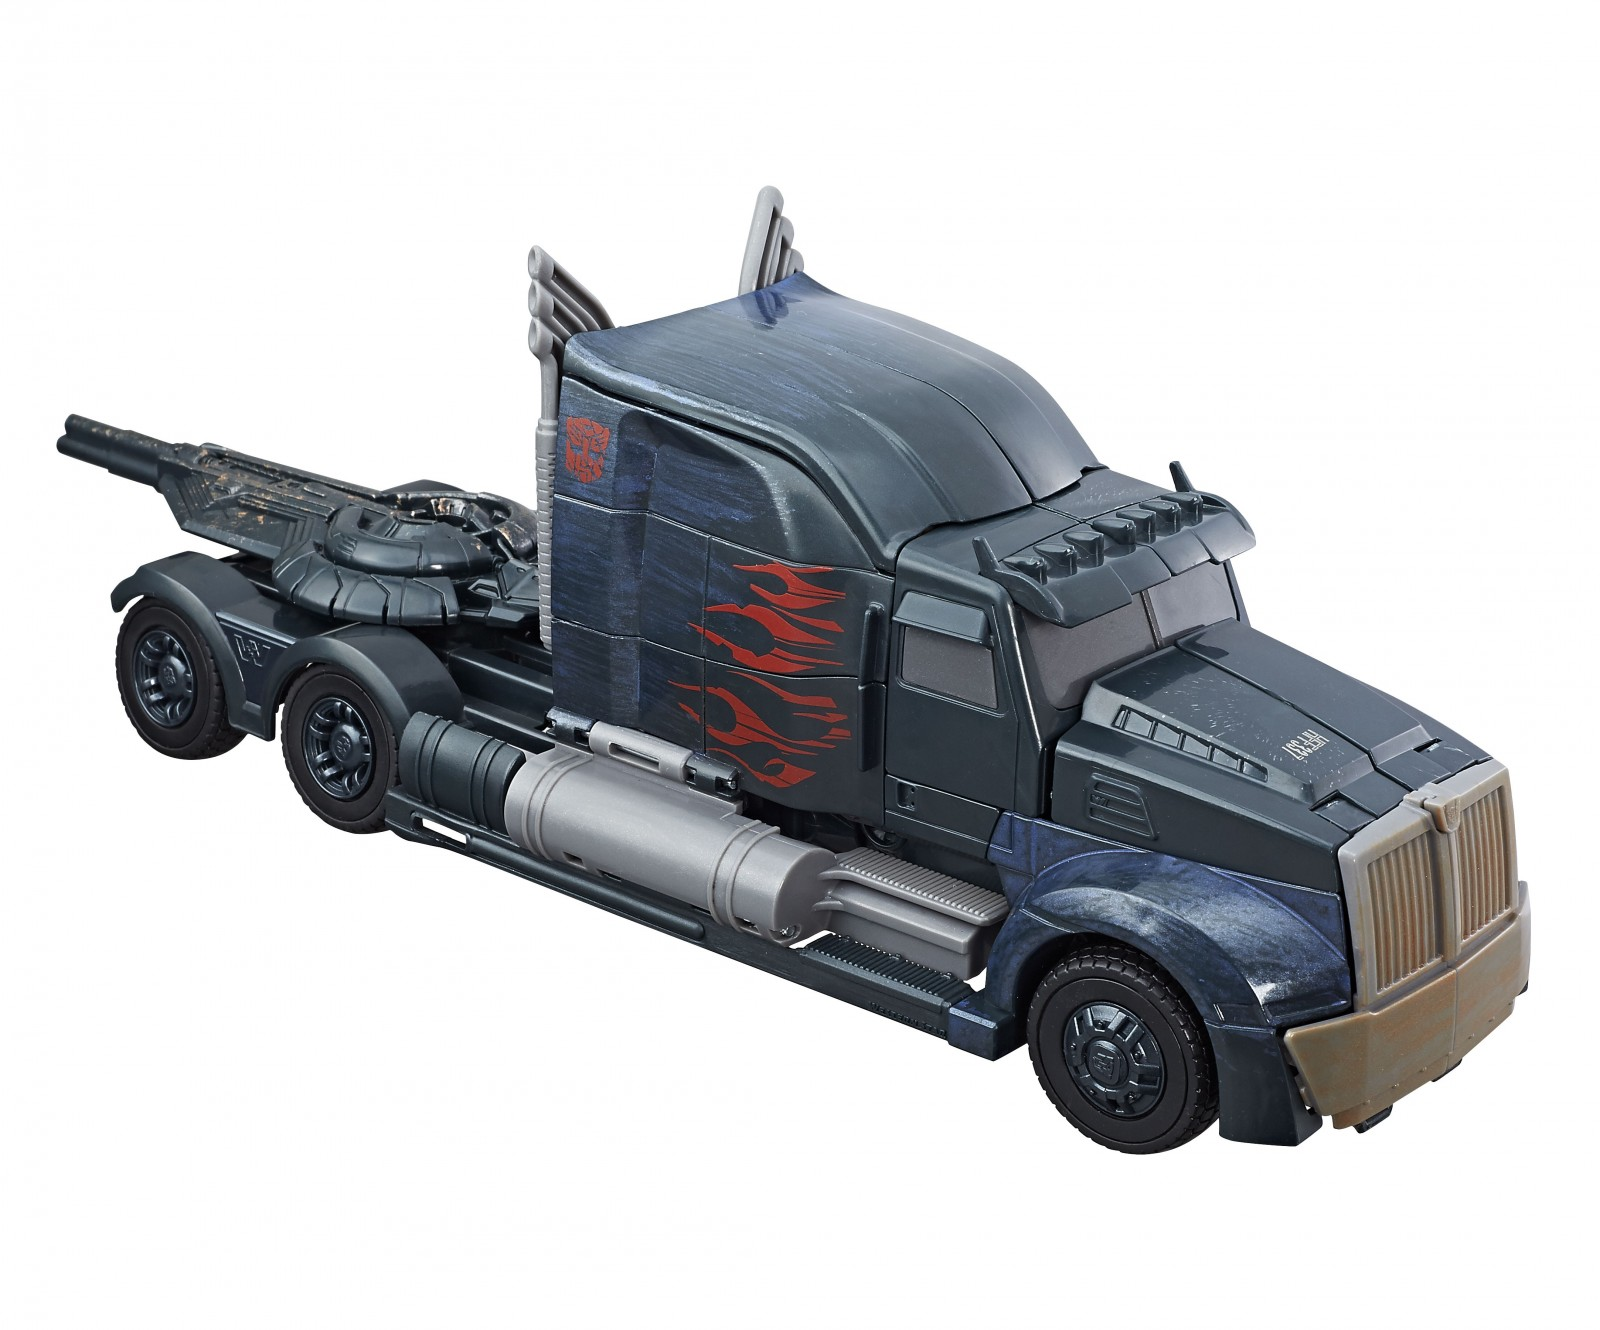 Transformers News: More info and large images of Shadow Spark Optimus Prime and MPM-3 Bumblebee Revealed